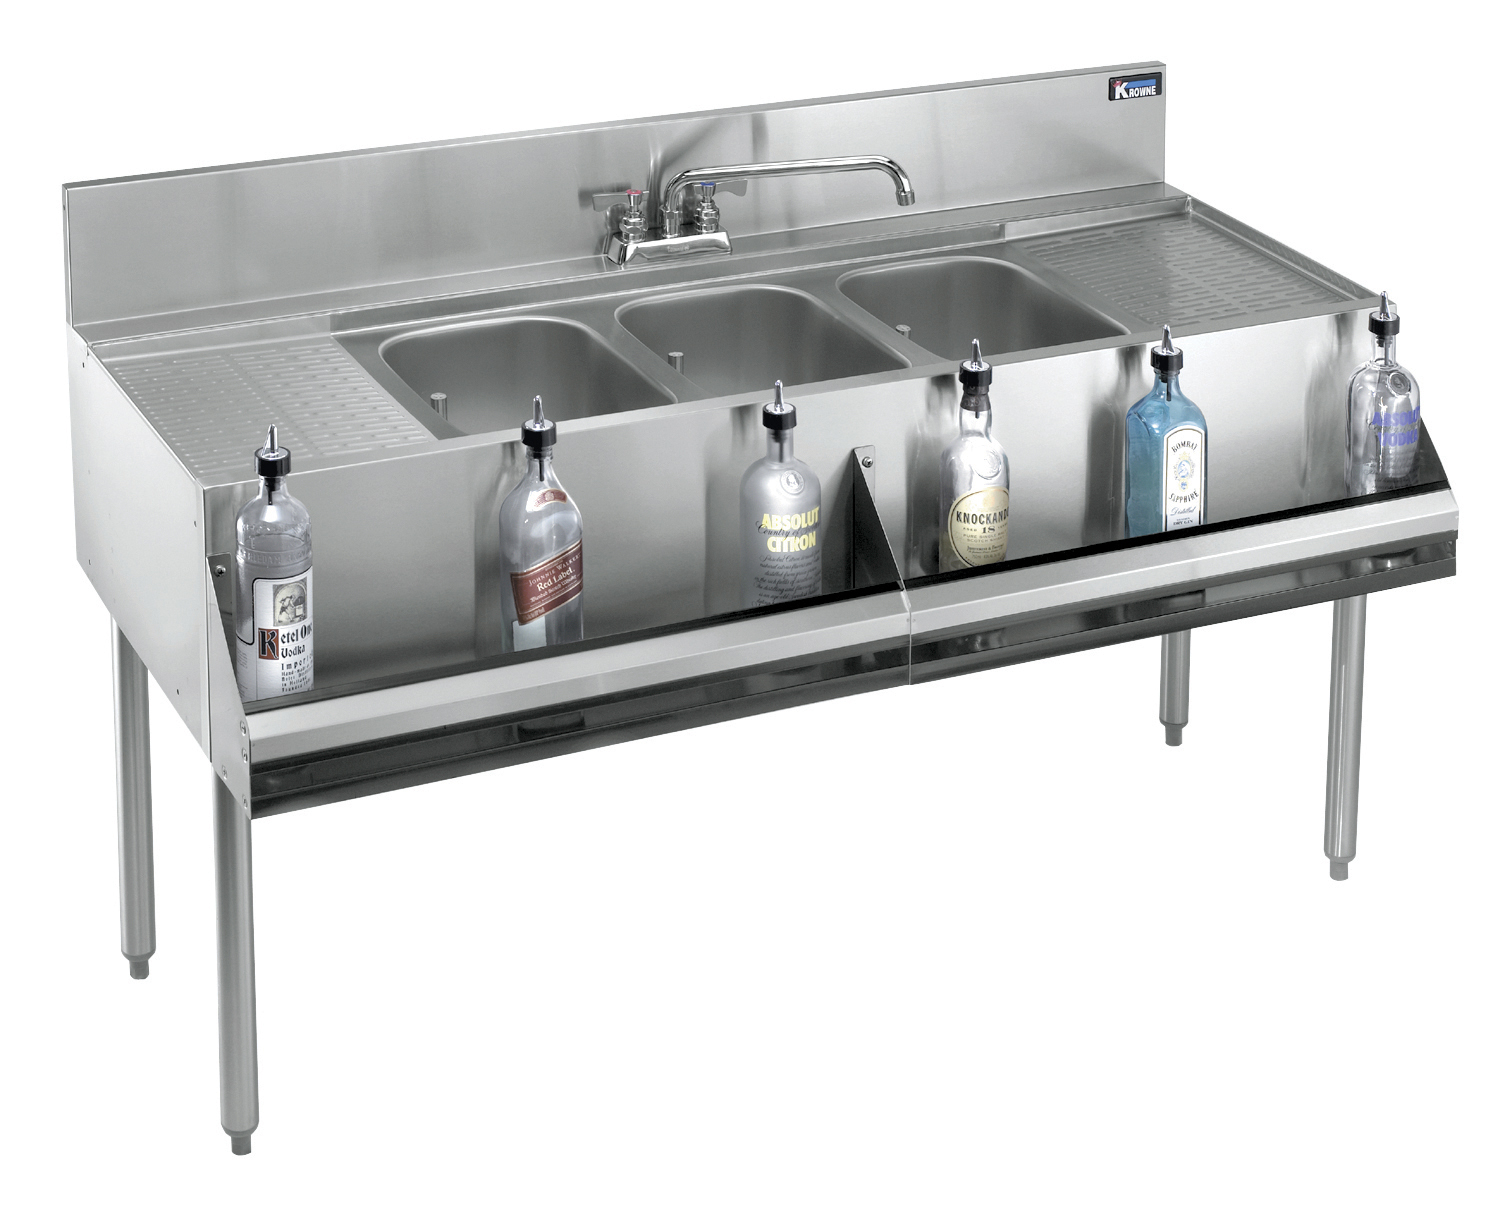 Krowne Metal KR19-73C underbar sink units